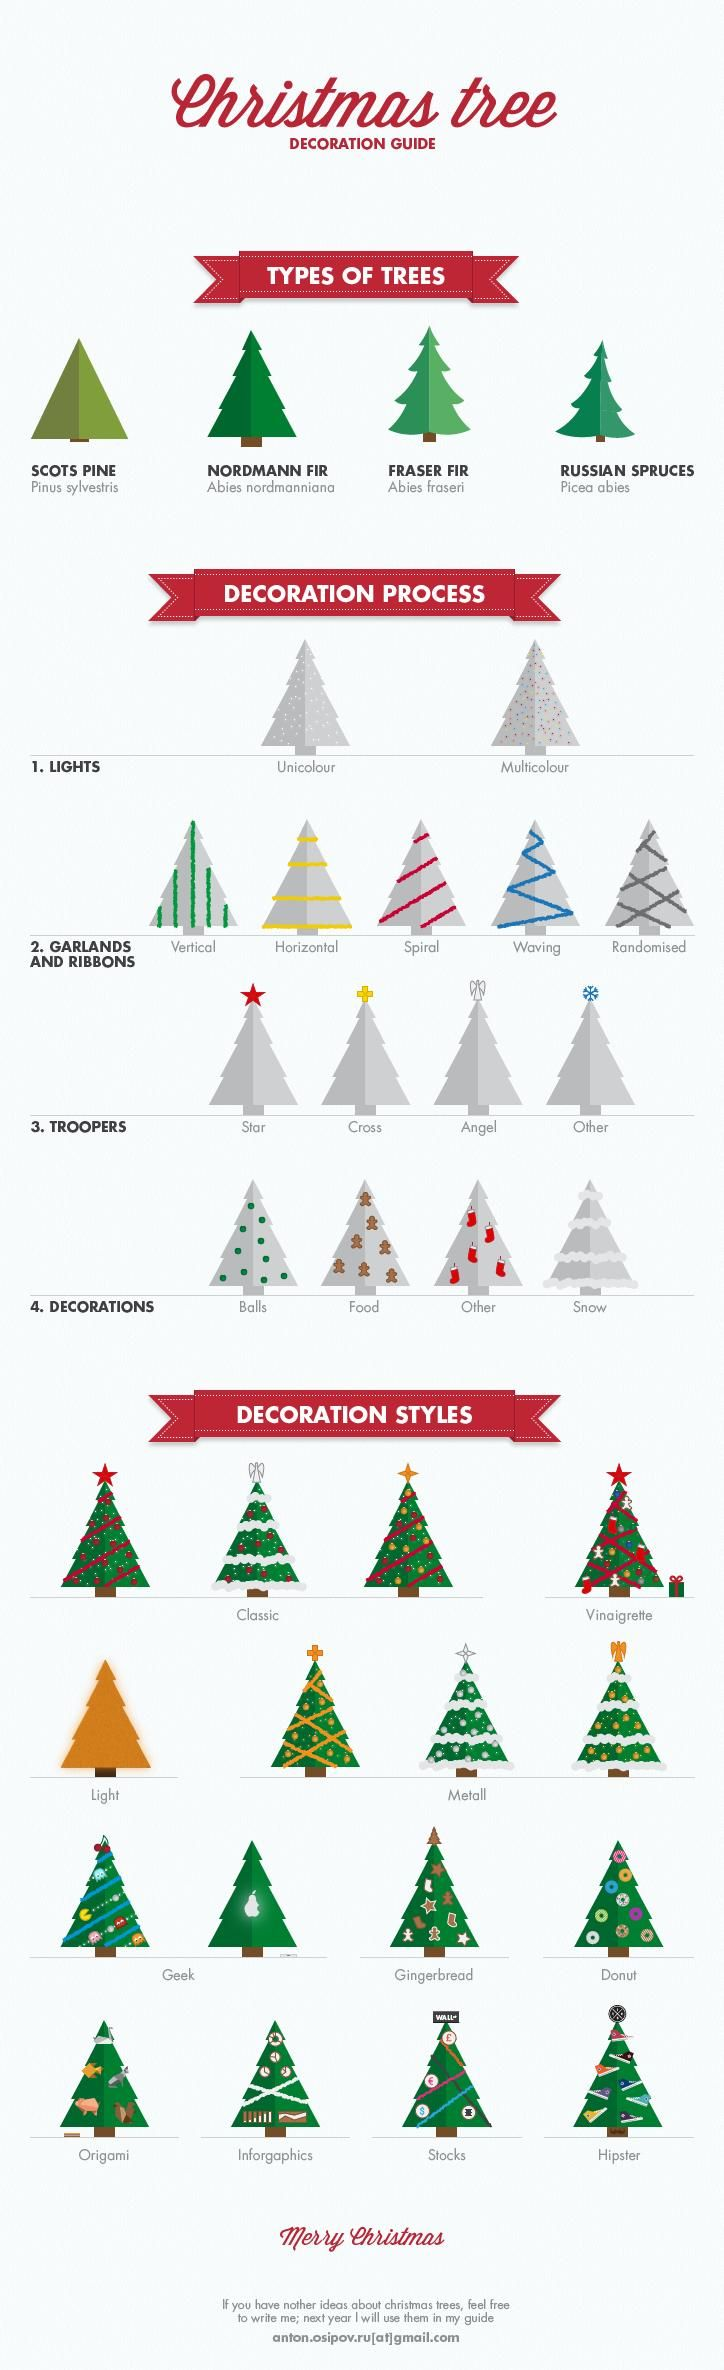 Christmas tree Decoration Guide #infographic #Christmas #ChristmasTree